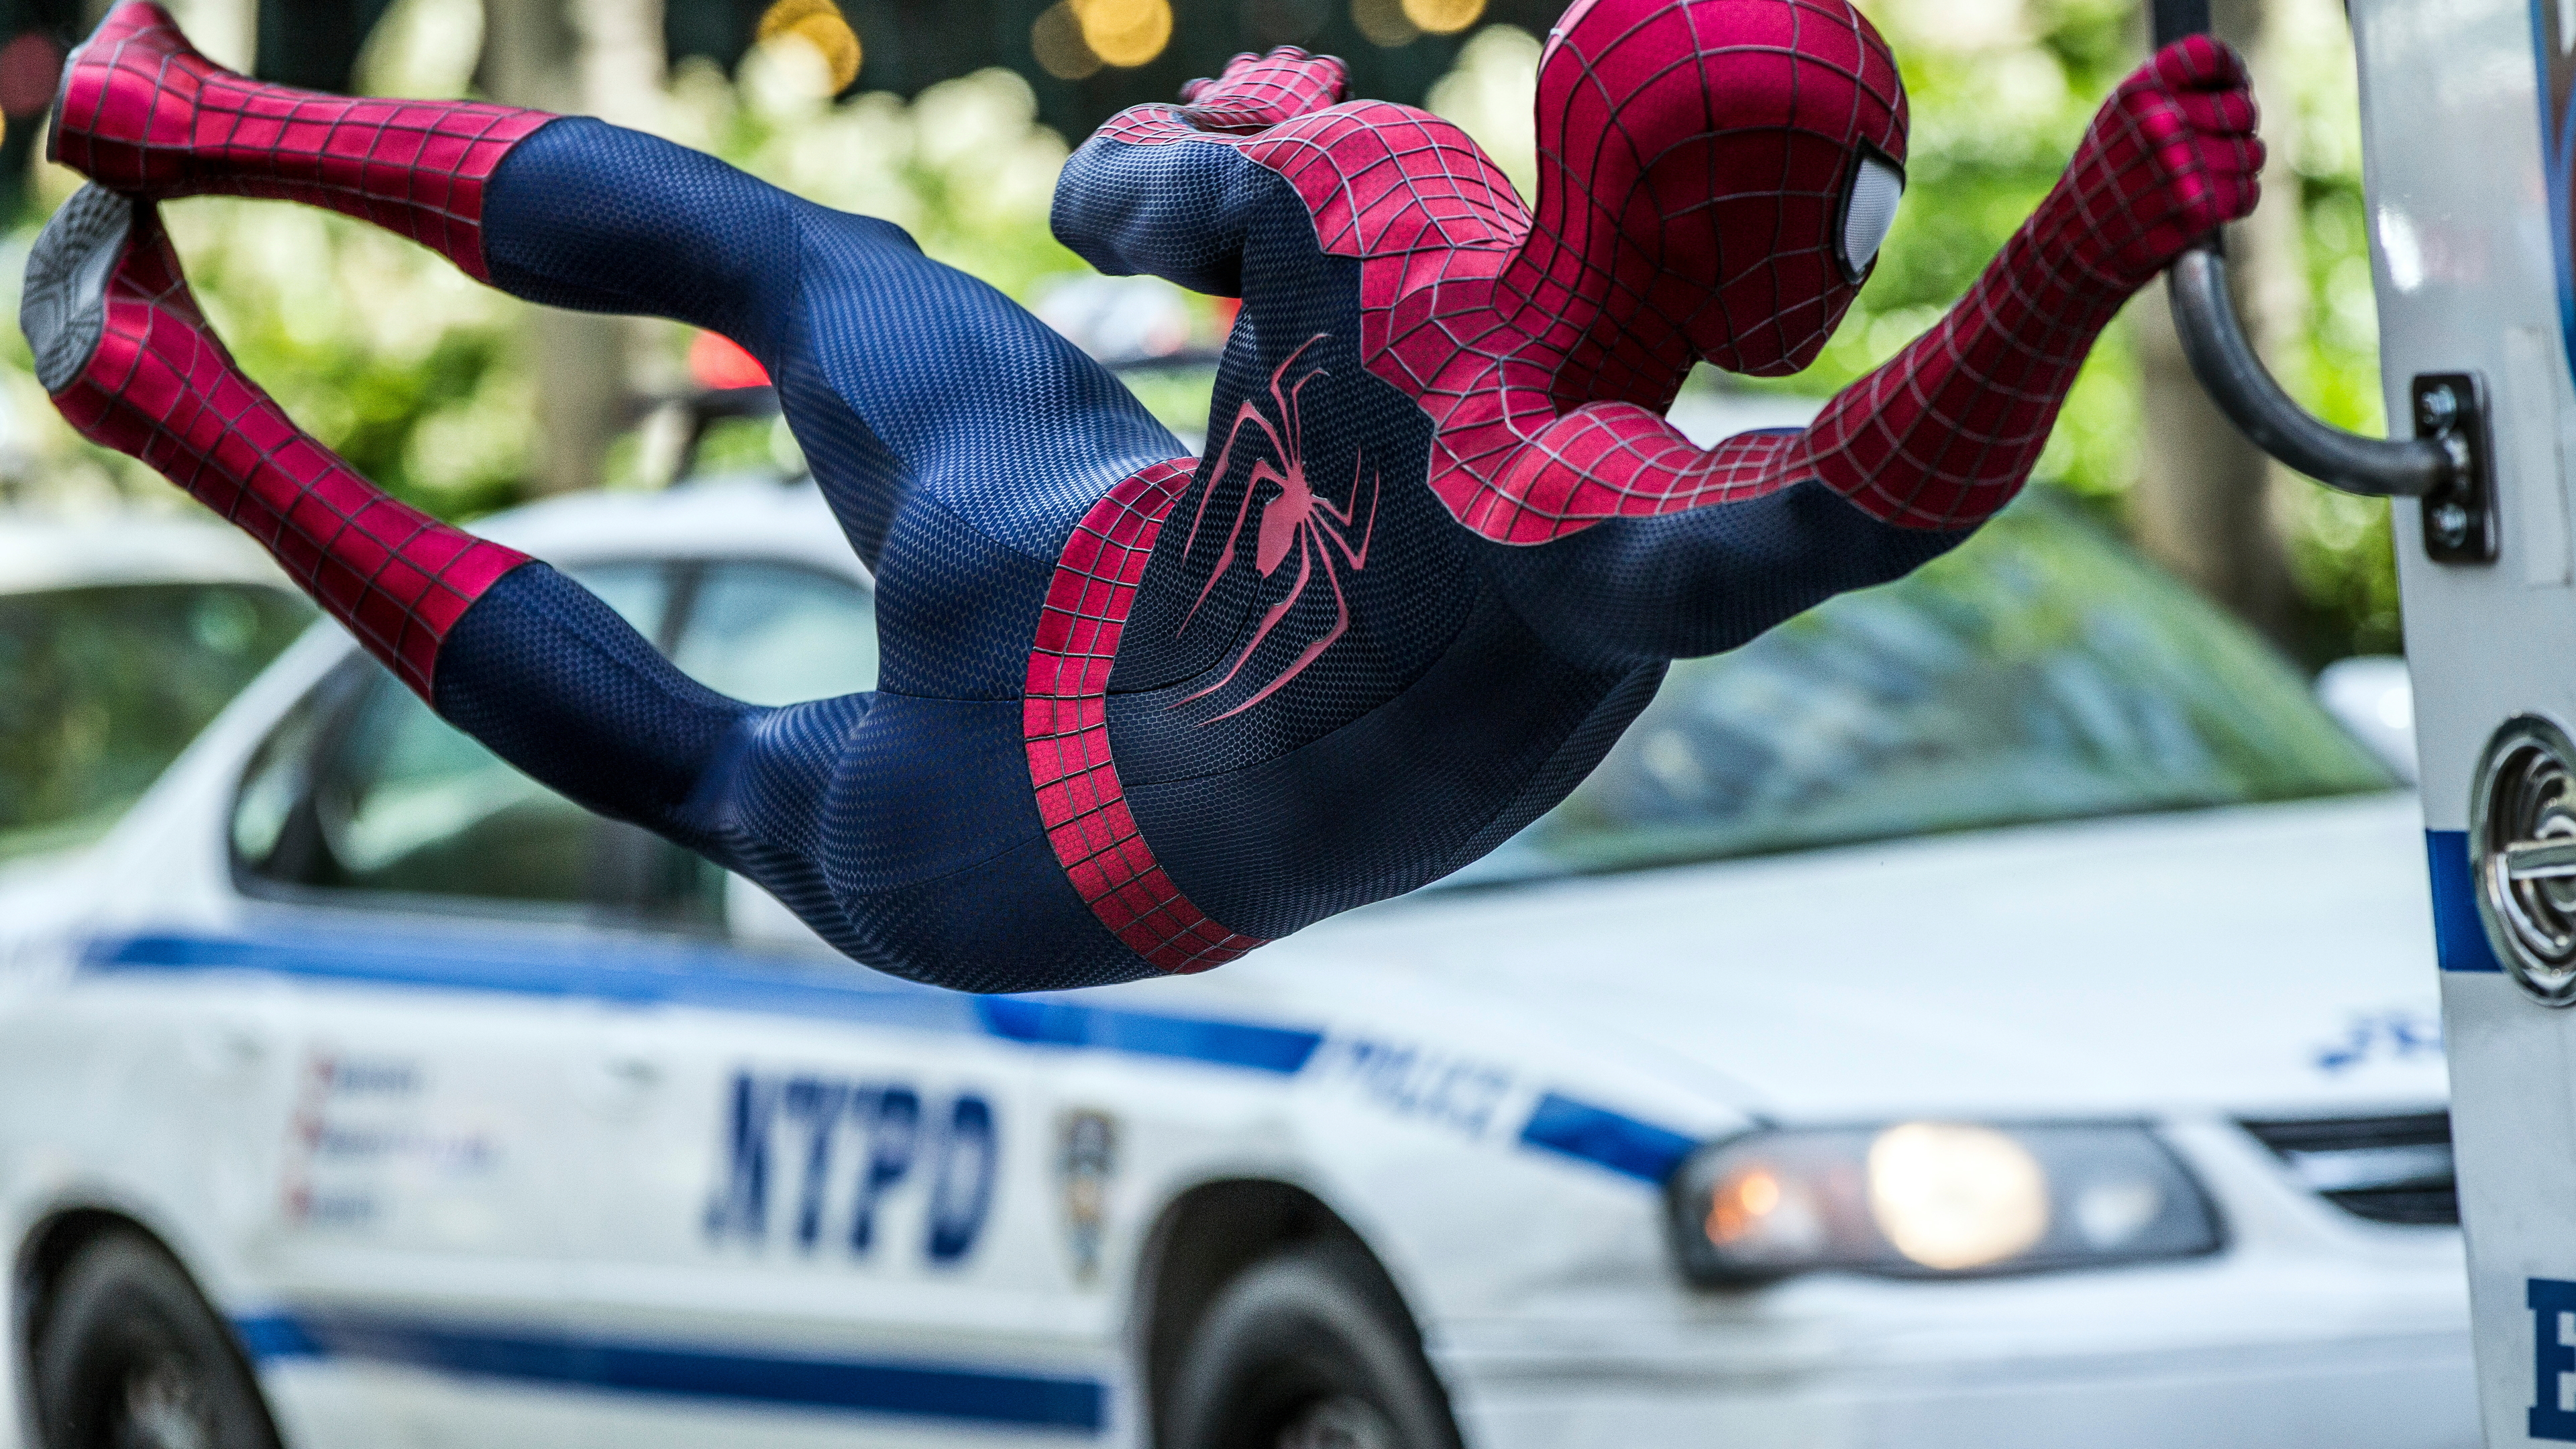 spiderman swing into the can 1536523731 - Spiderman Swing Into The Can - superheroes wallpapers, spiderman wallpapers, movies wallpapers, hd-wallpapers, 5k wallpapers, 4k-wallpapers